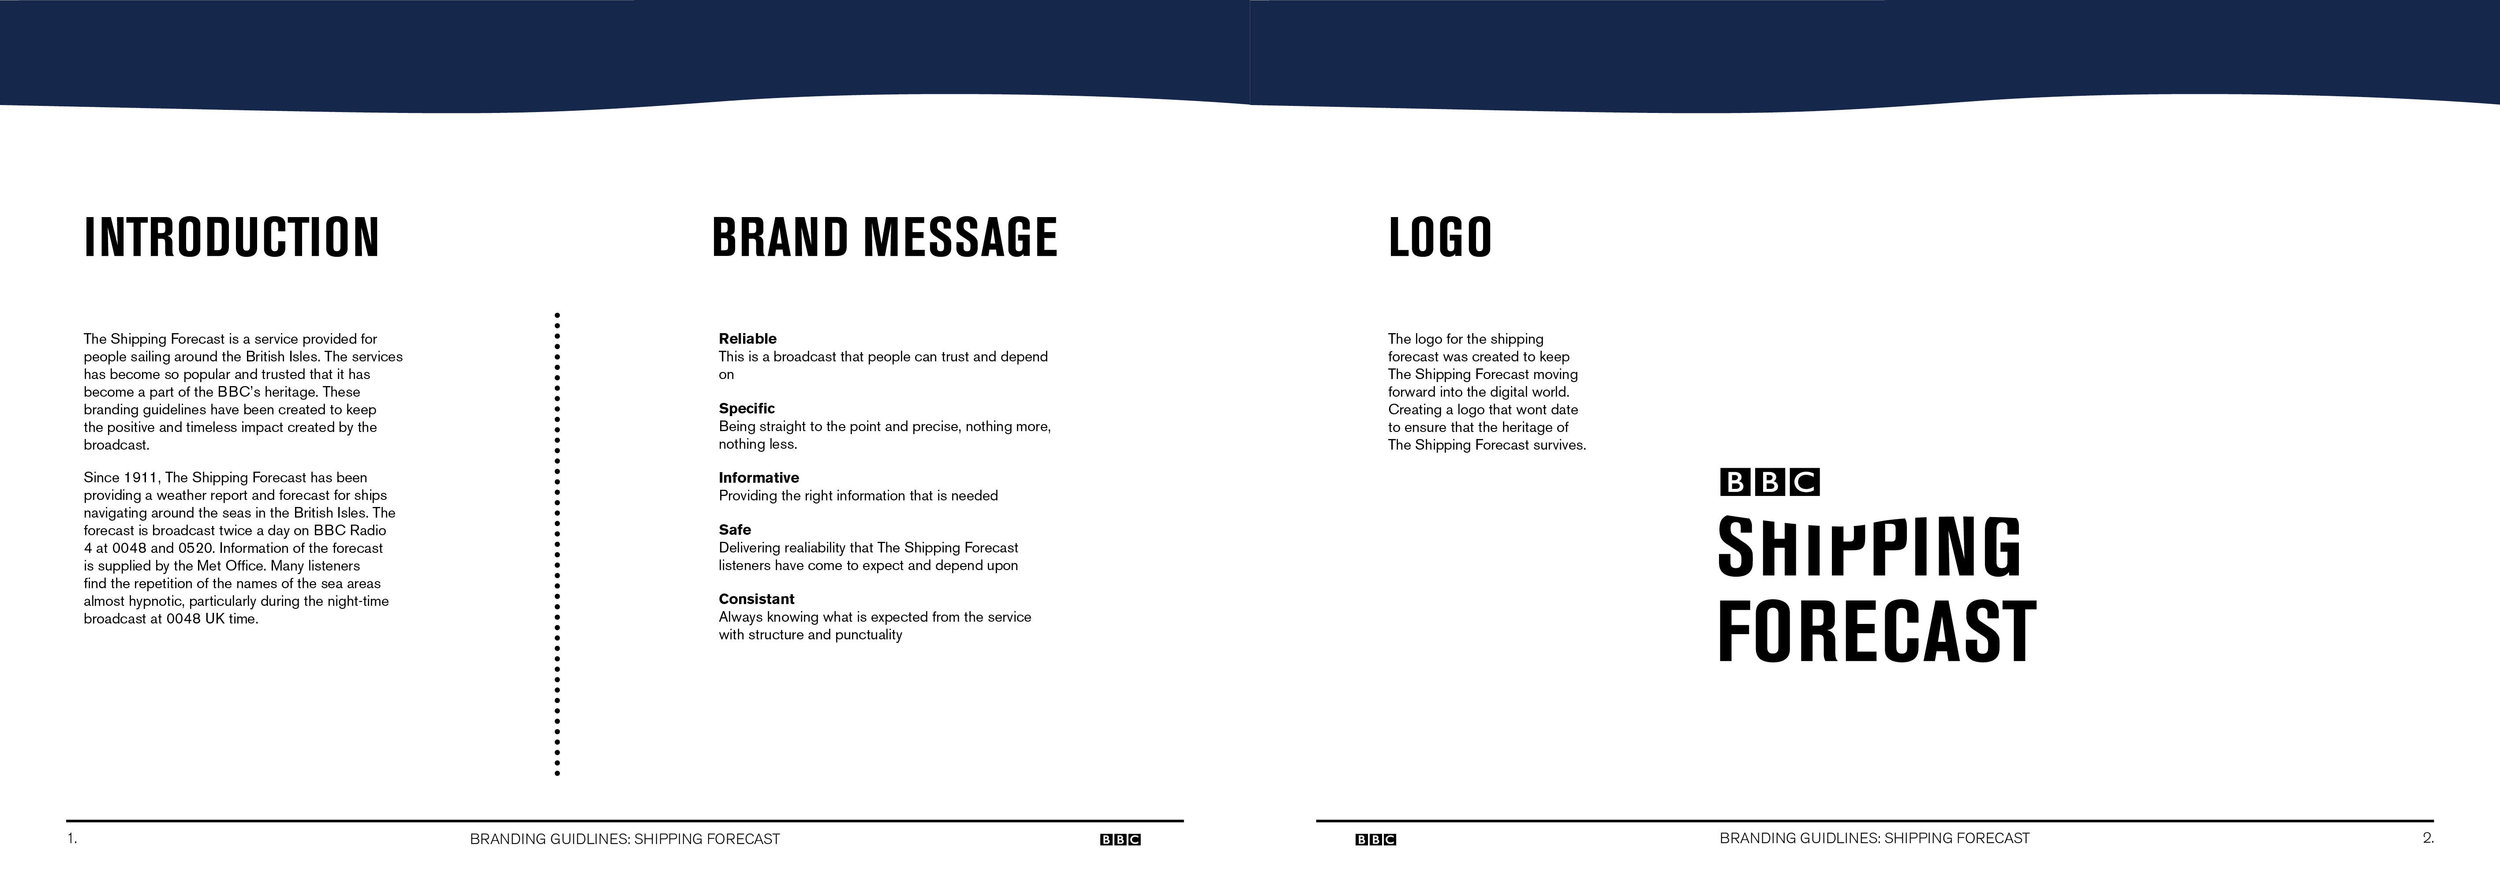 Shipping Branding Booklet New layout3.jpg